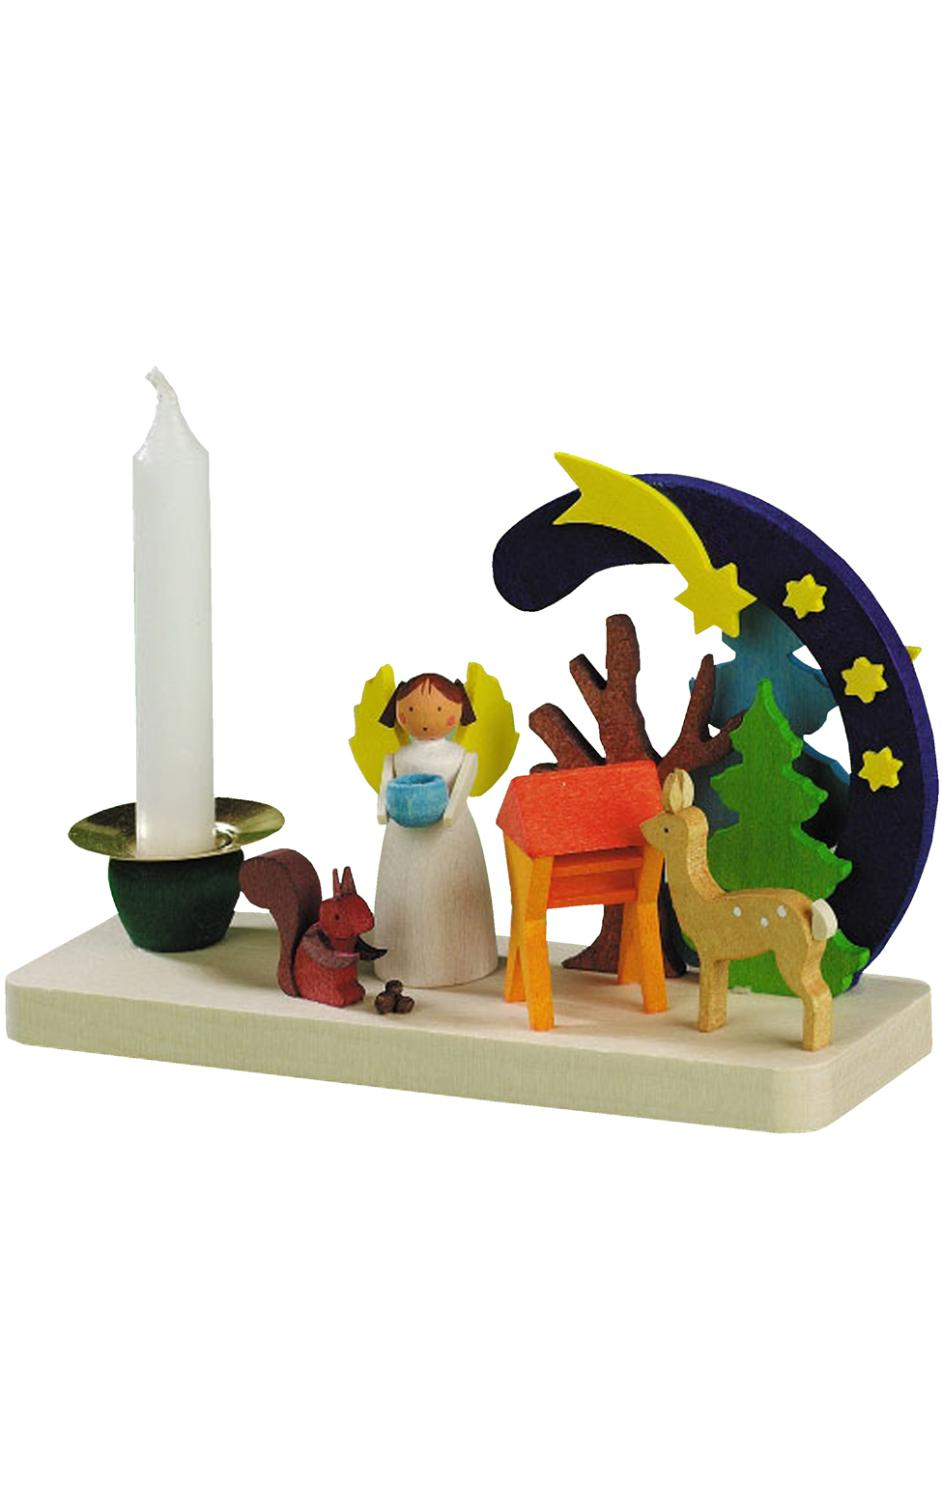 703 - Graupner Ornament - Angel Candleholder - 3